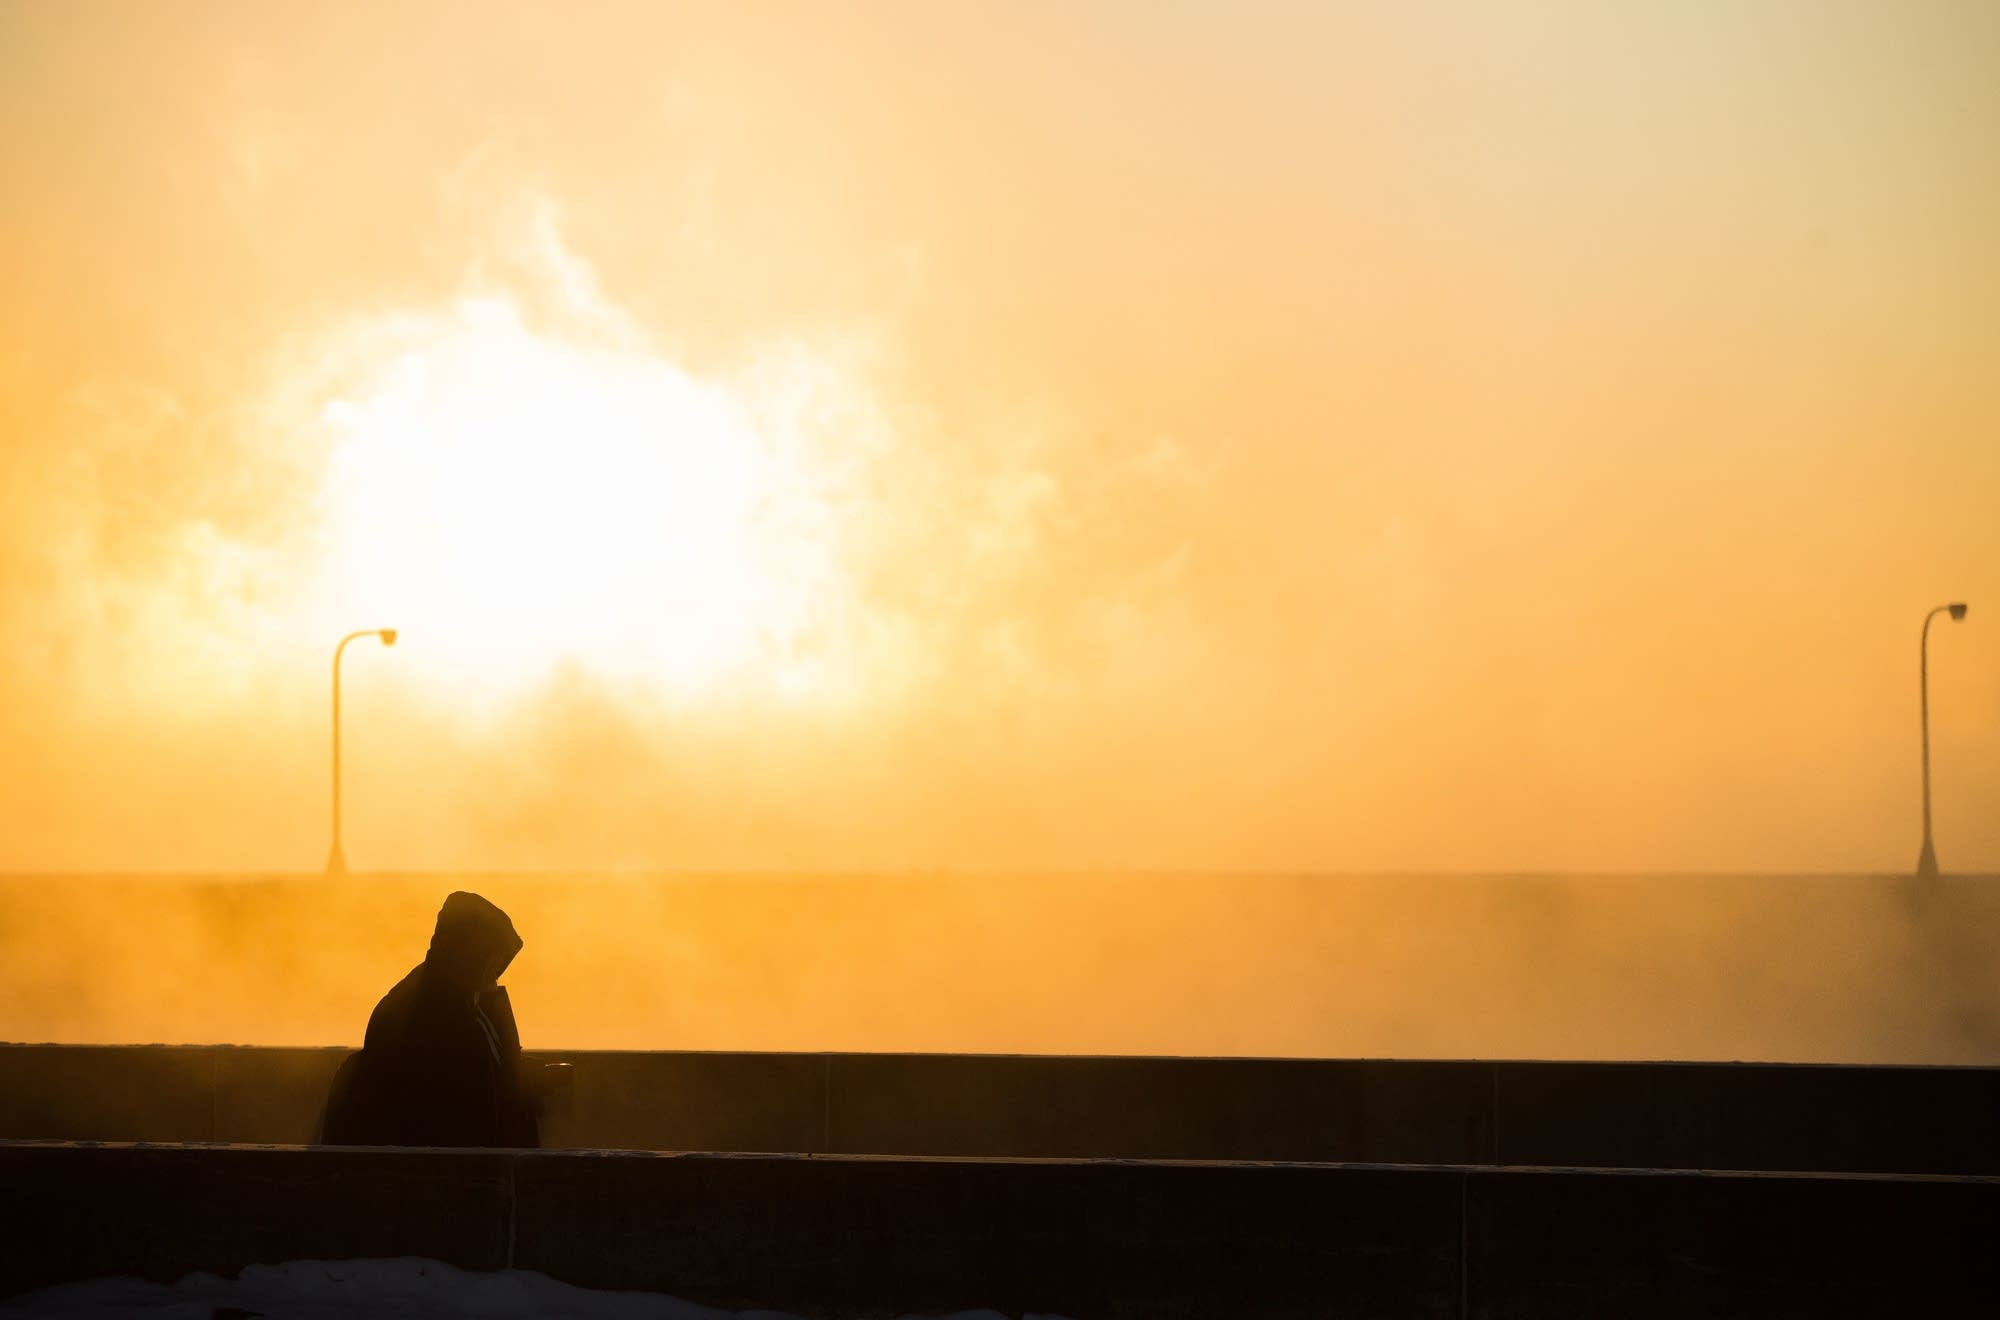 A photographer is silhouetted by the rising sun and sea smoke.